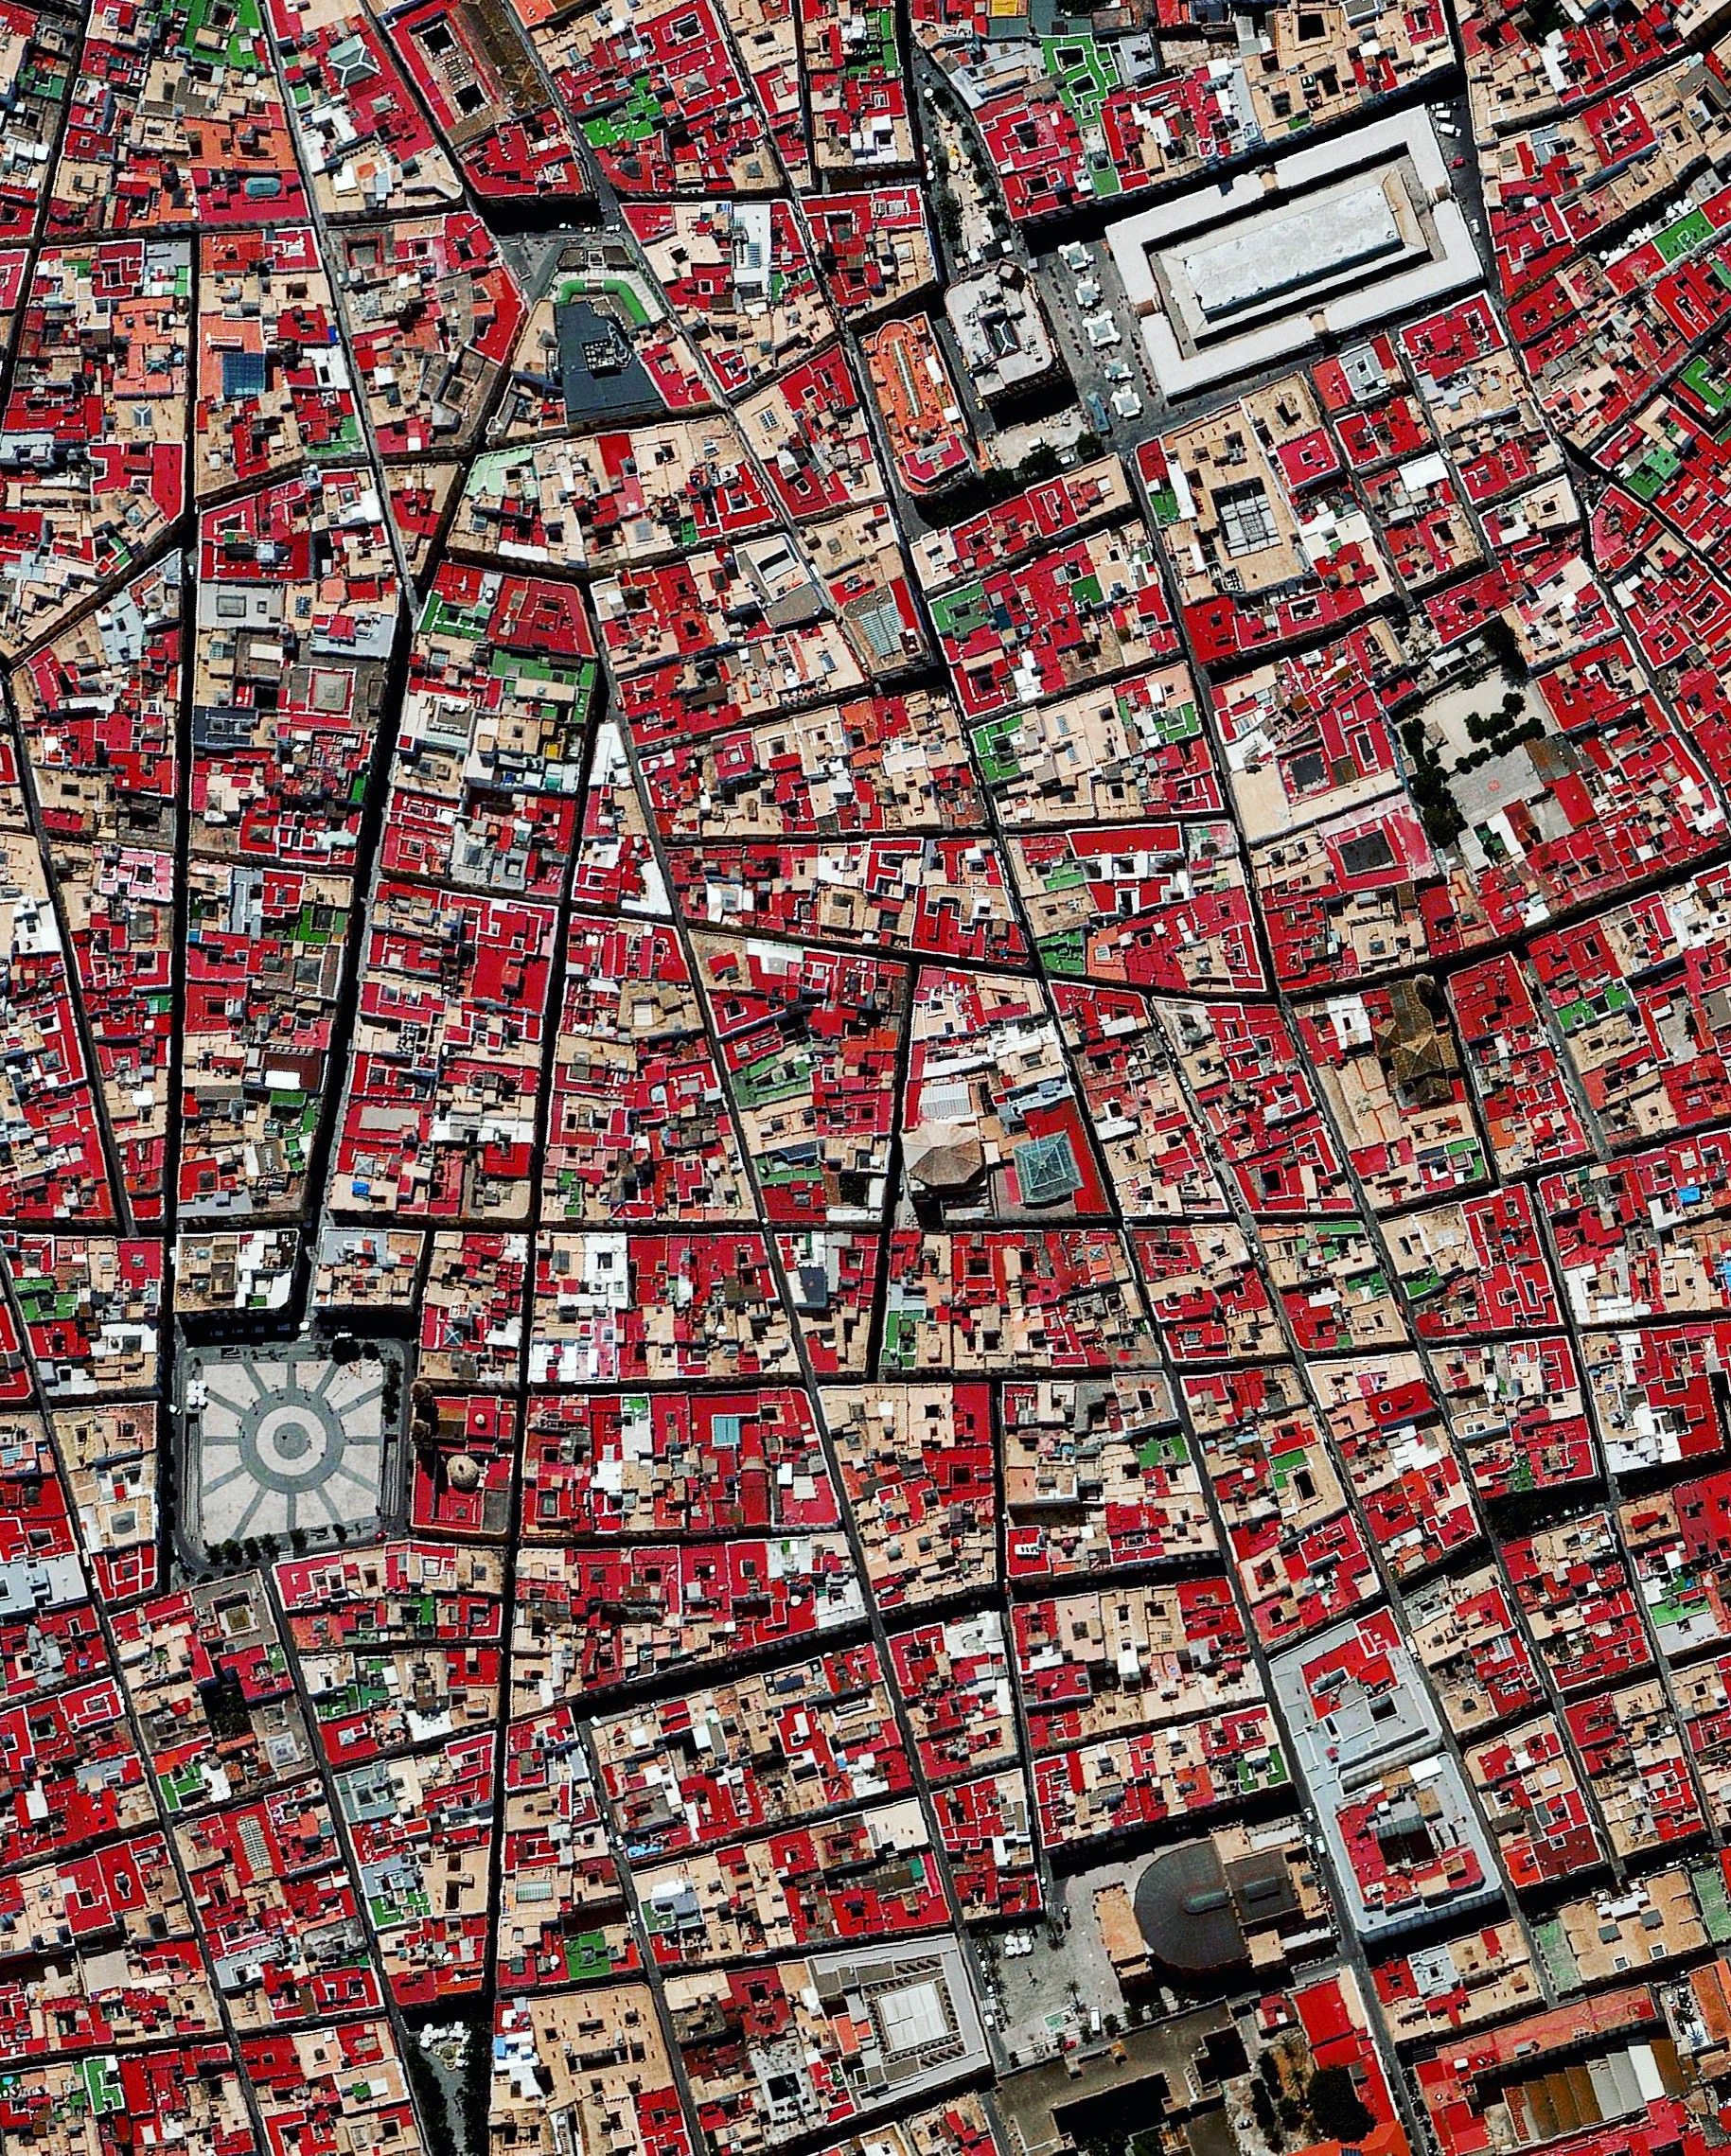 """Cádiz is an ancient port city surrounded by the sea in southwest Spain. Because the city was constructed upon a spit of land that cannot support high-rises, its skyline has not substantially changed since medieval times. A portion of the """"Old City"""" — an area characterized by narrow winding alleys connecting large plazas and markets — is seen in this Overview.  36.531514, -6.299827"""